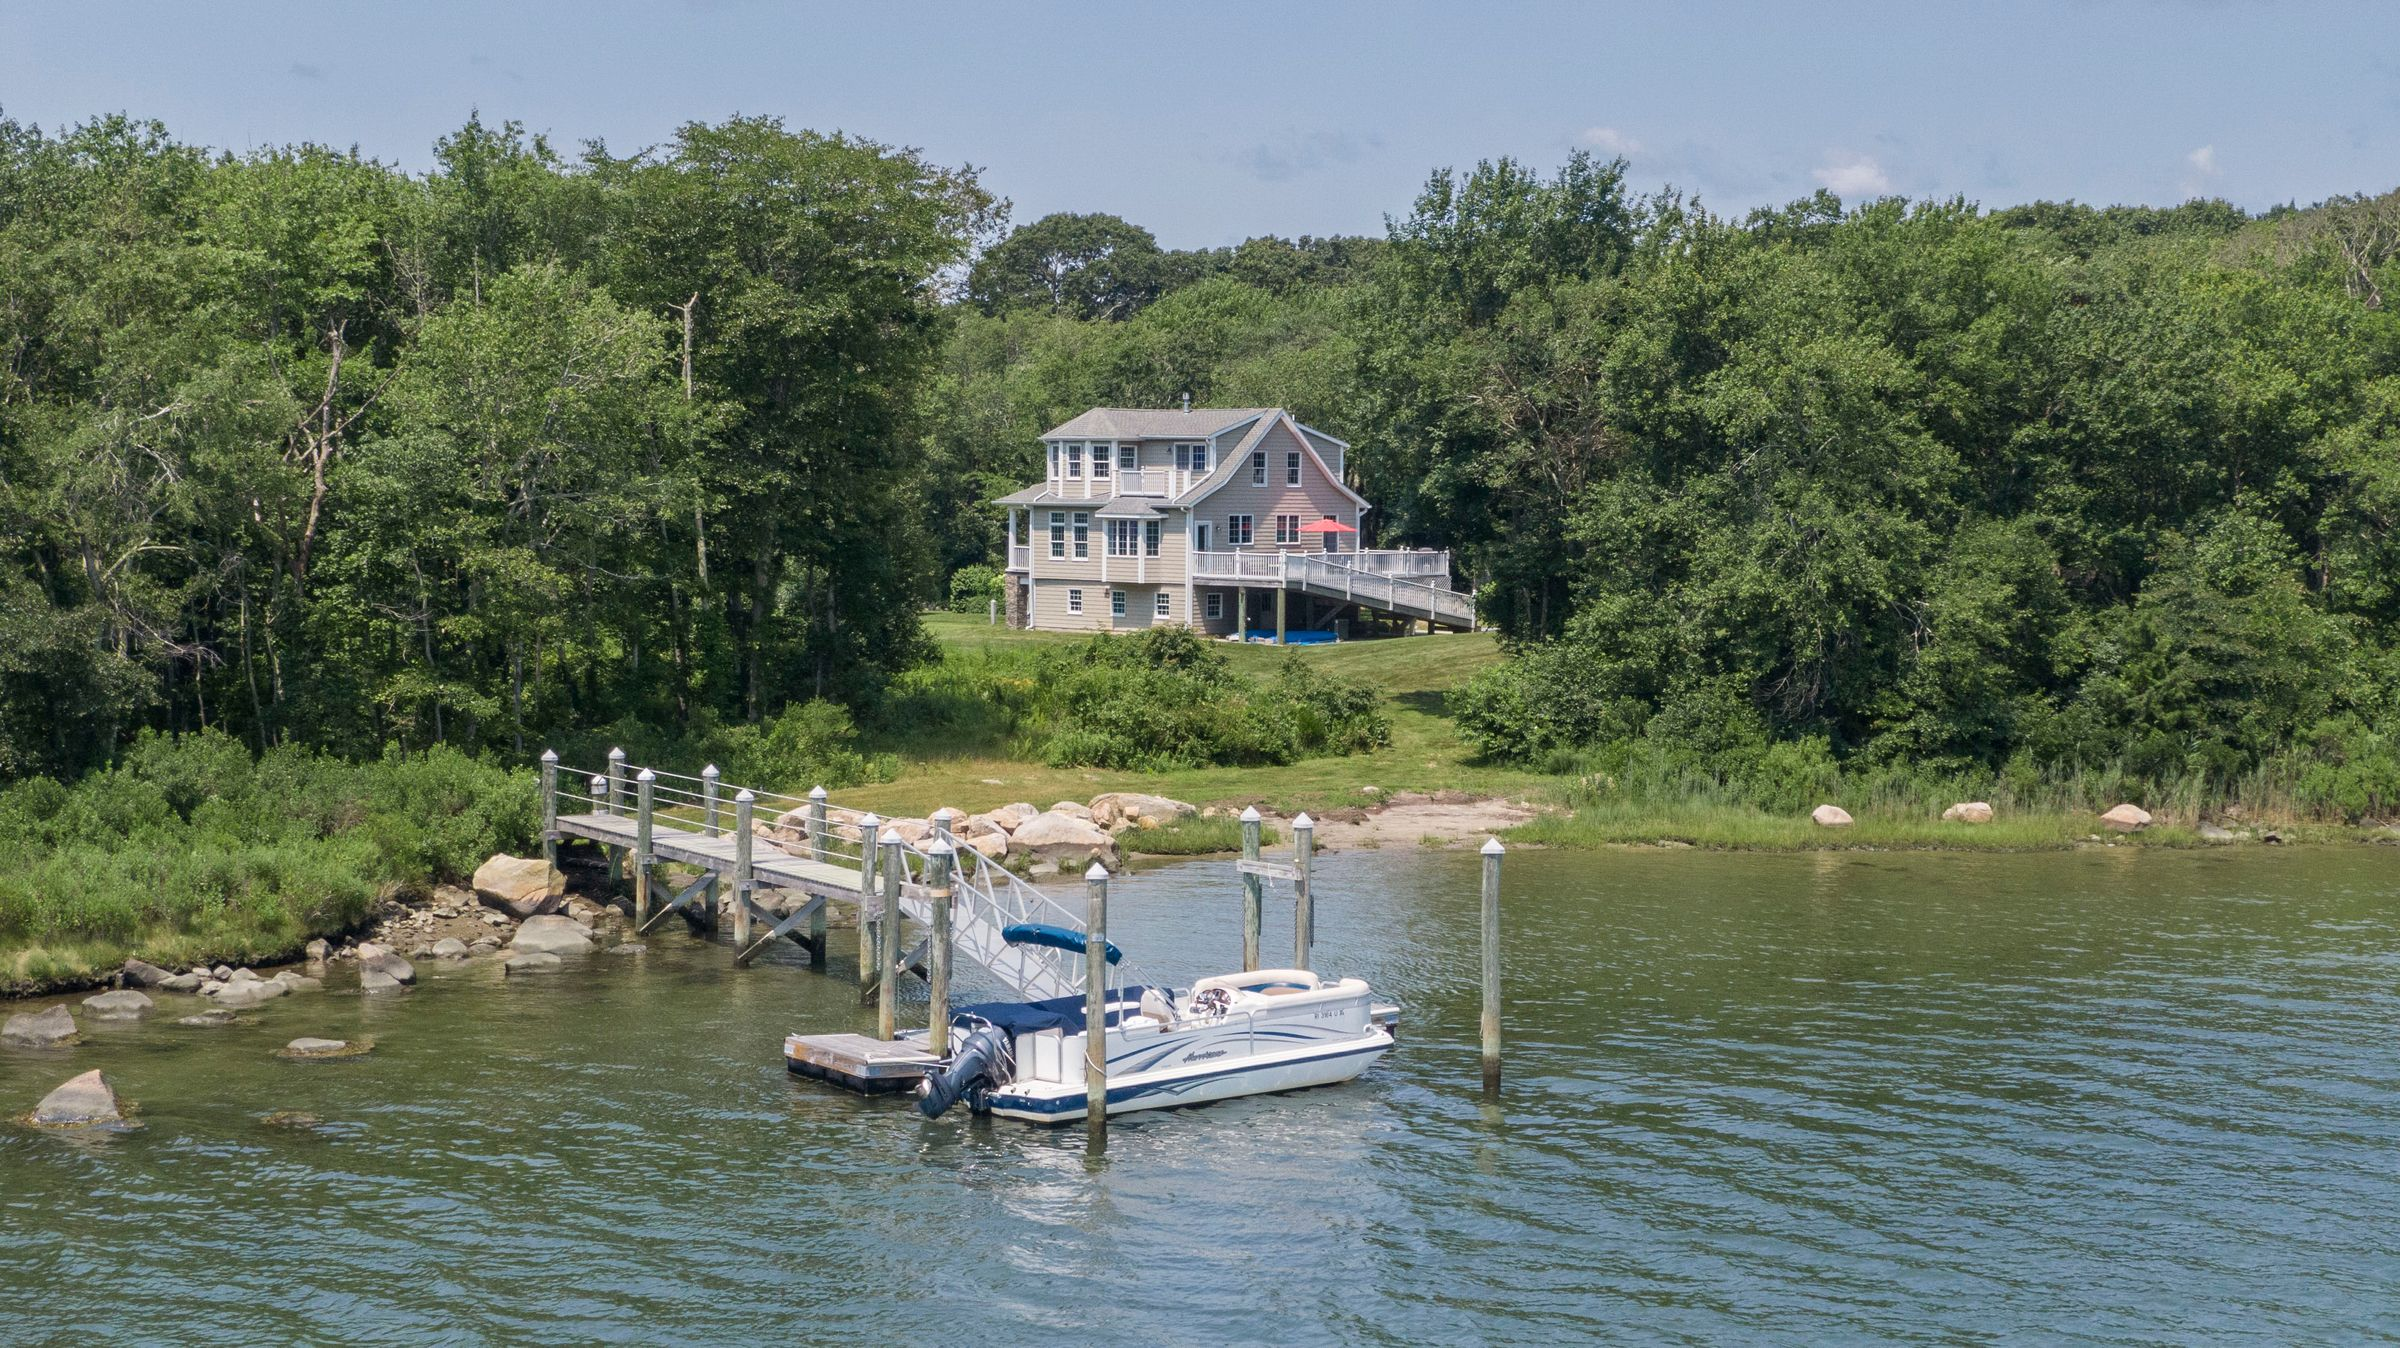 SHADY HARBOR HOME SELLS FOR $3.5M, MARKING RECORD SALE IN THE NEIGHBORHOOD AND SECOND HIGHEST SALE IN CHARLESTOWN YEAR-TO-DATE*